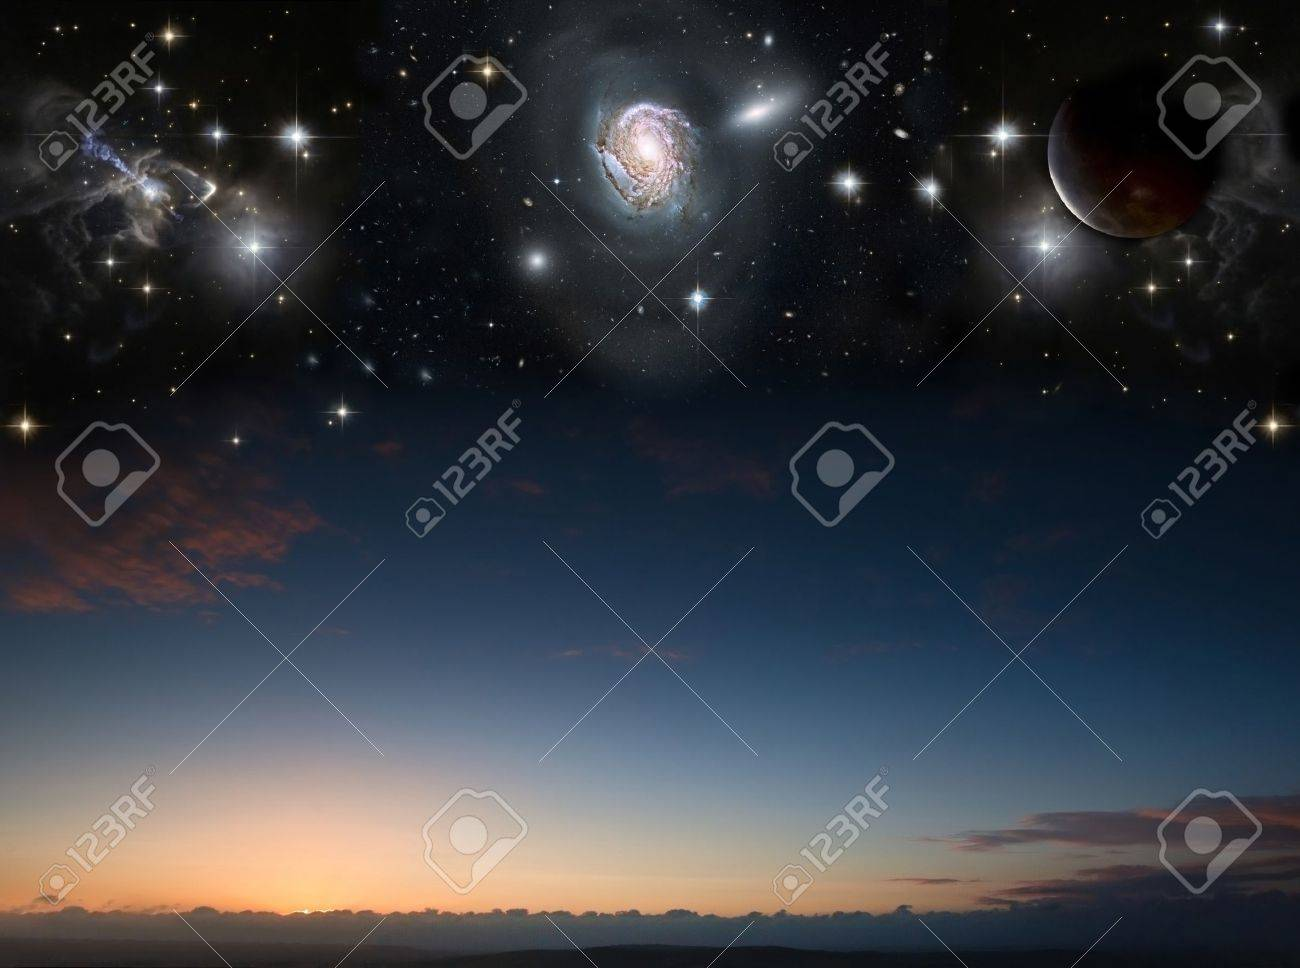 Countryside sunset landscape with planets in night sky Stock Photo - 15661163